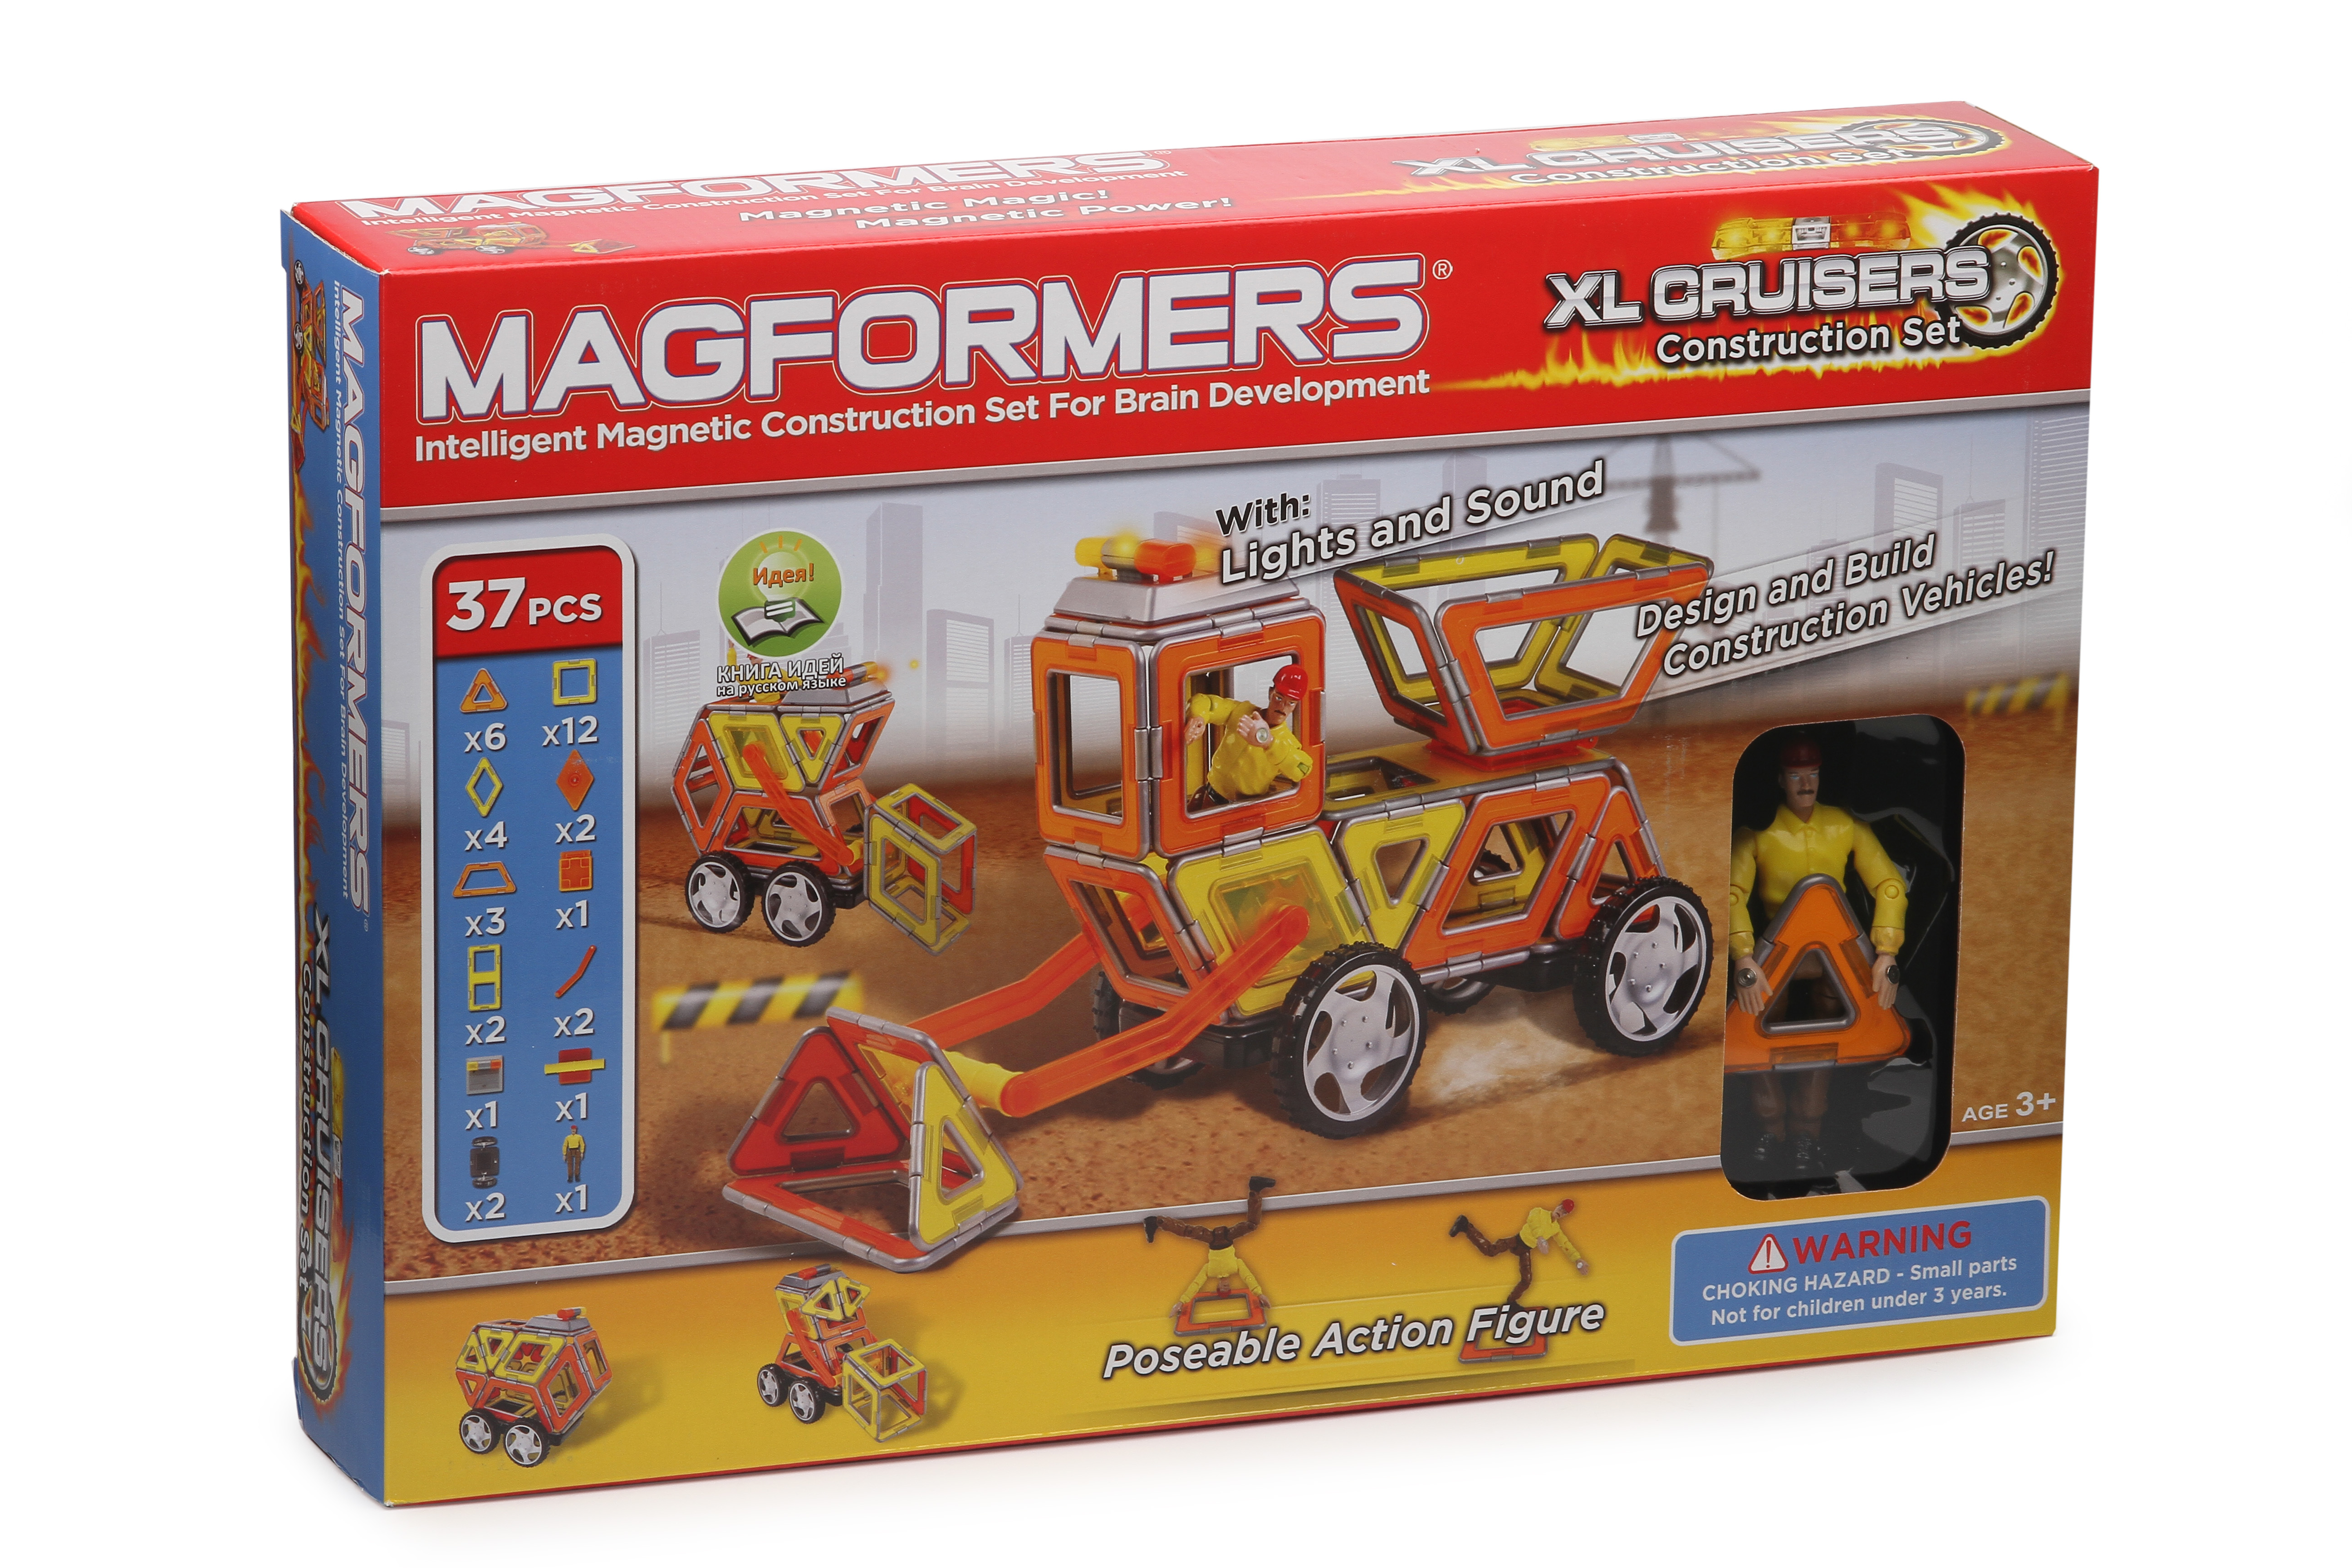 ����������� Magformers XL Cruisers ���������